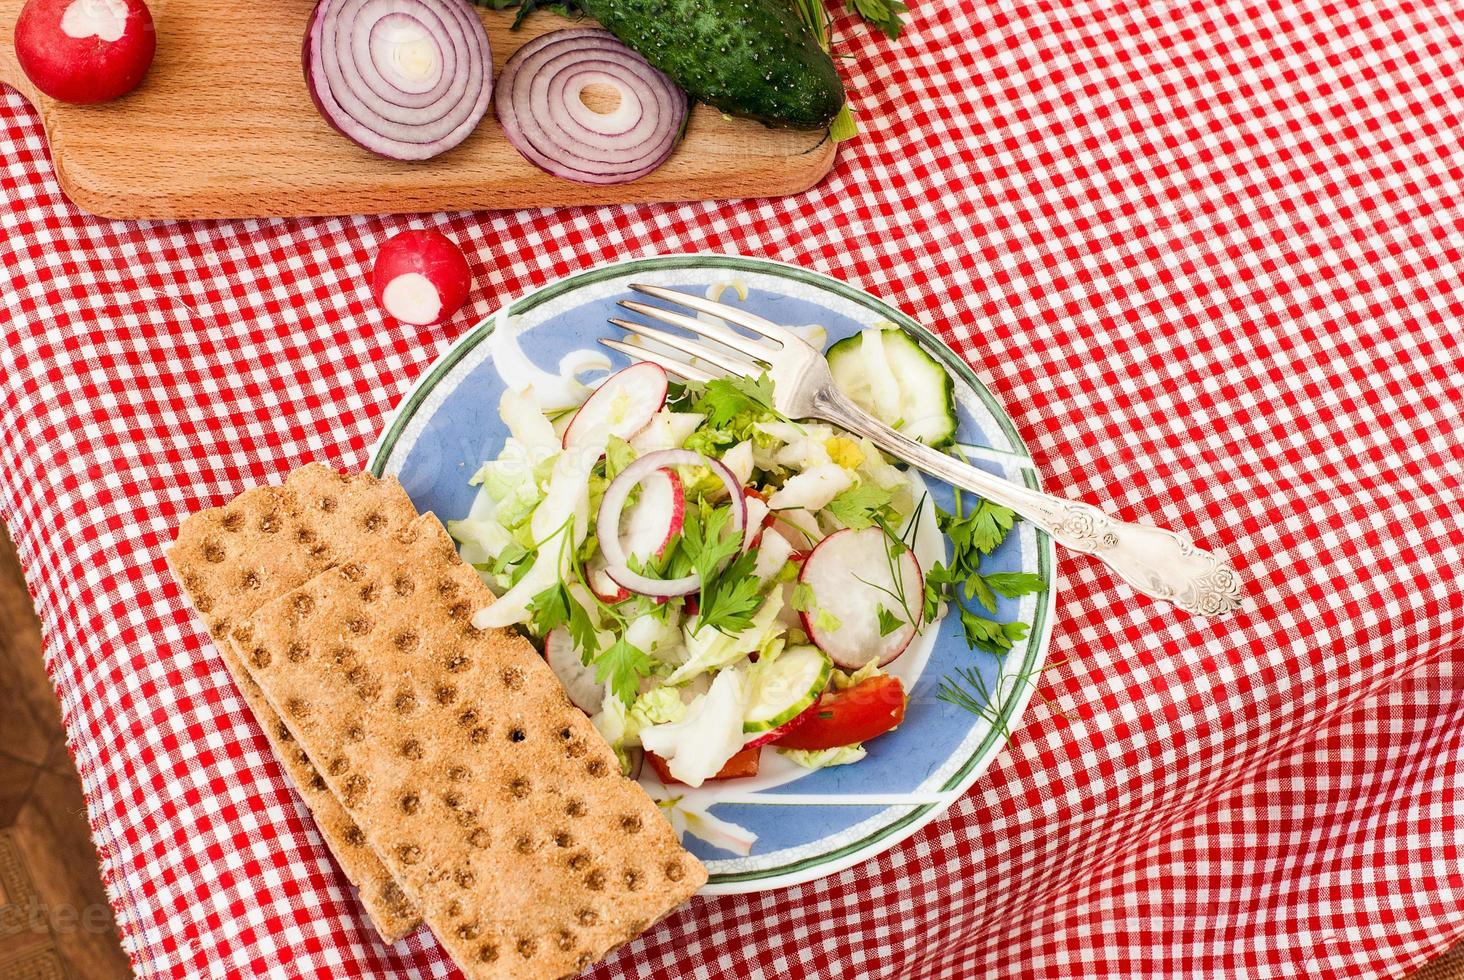 Spring salad with radishes, cucumber, cabbage and onion close-up photo